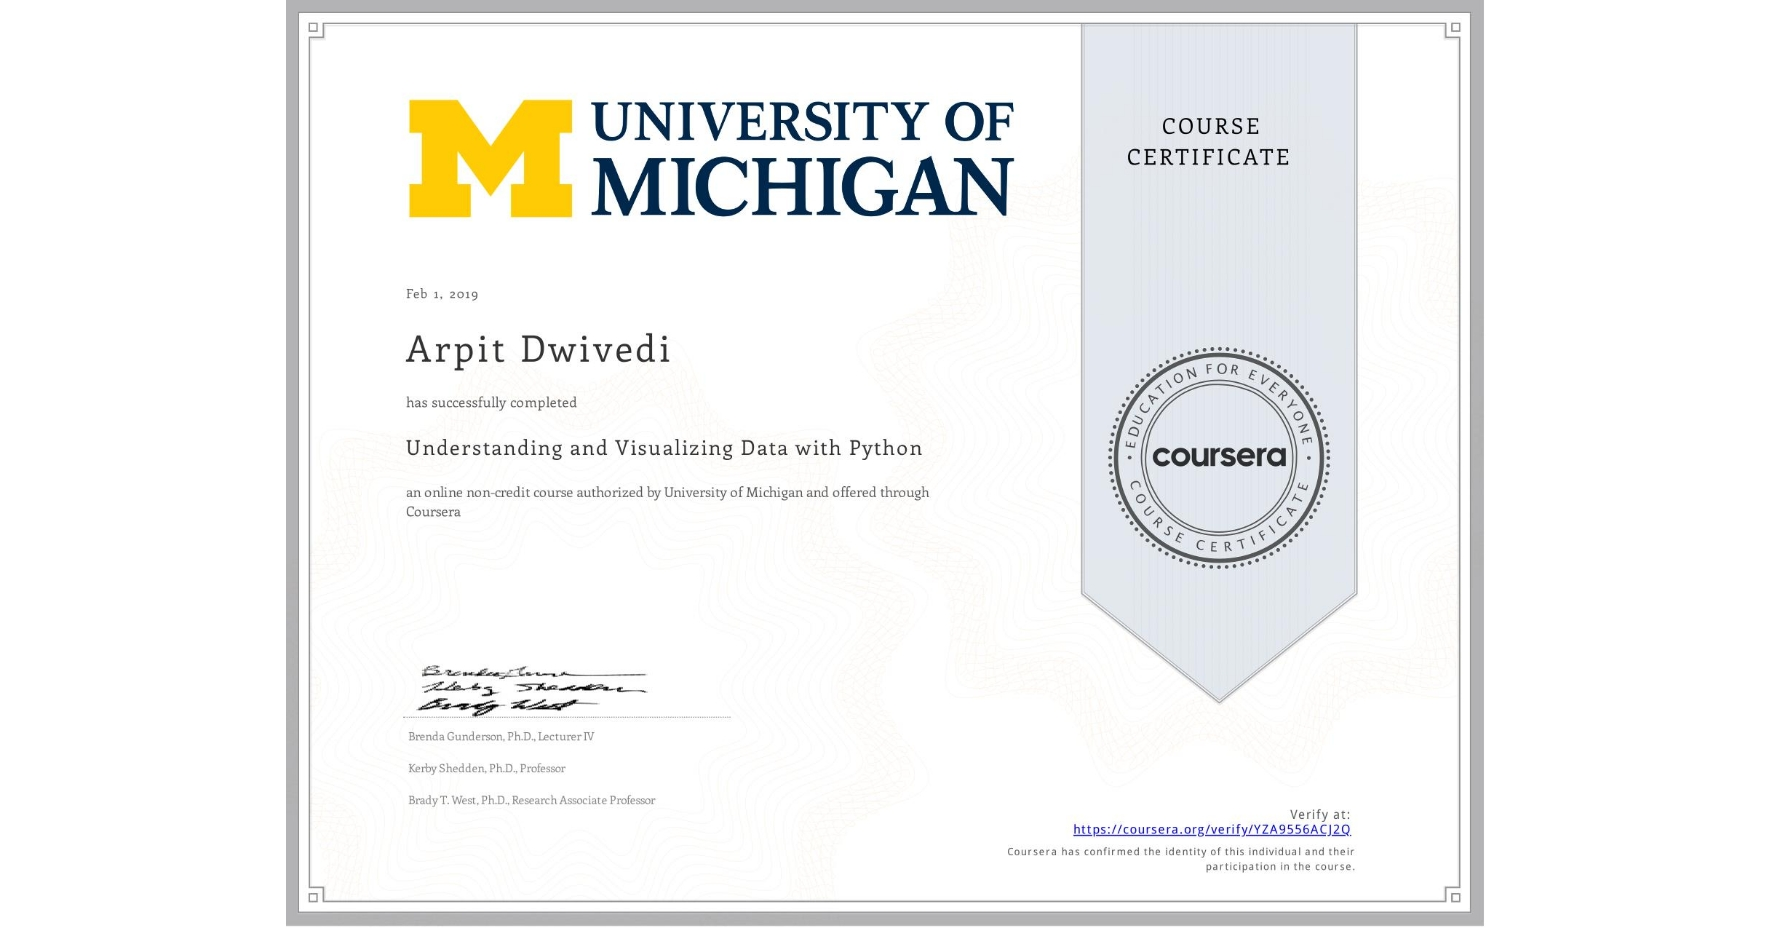 View certificate for Arpit Dwivedi, Understanding and Visualizing Data with Python, an online non-credit course authorized by University of Michigan and offered through Coursera